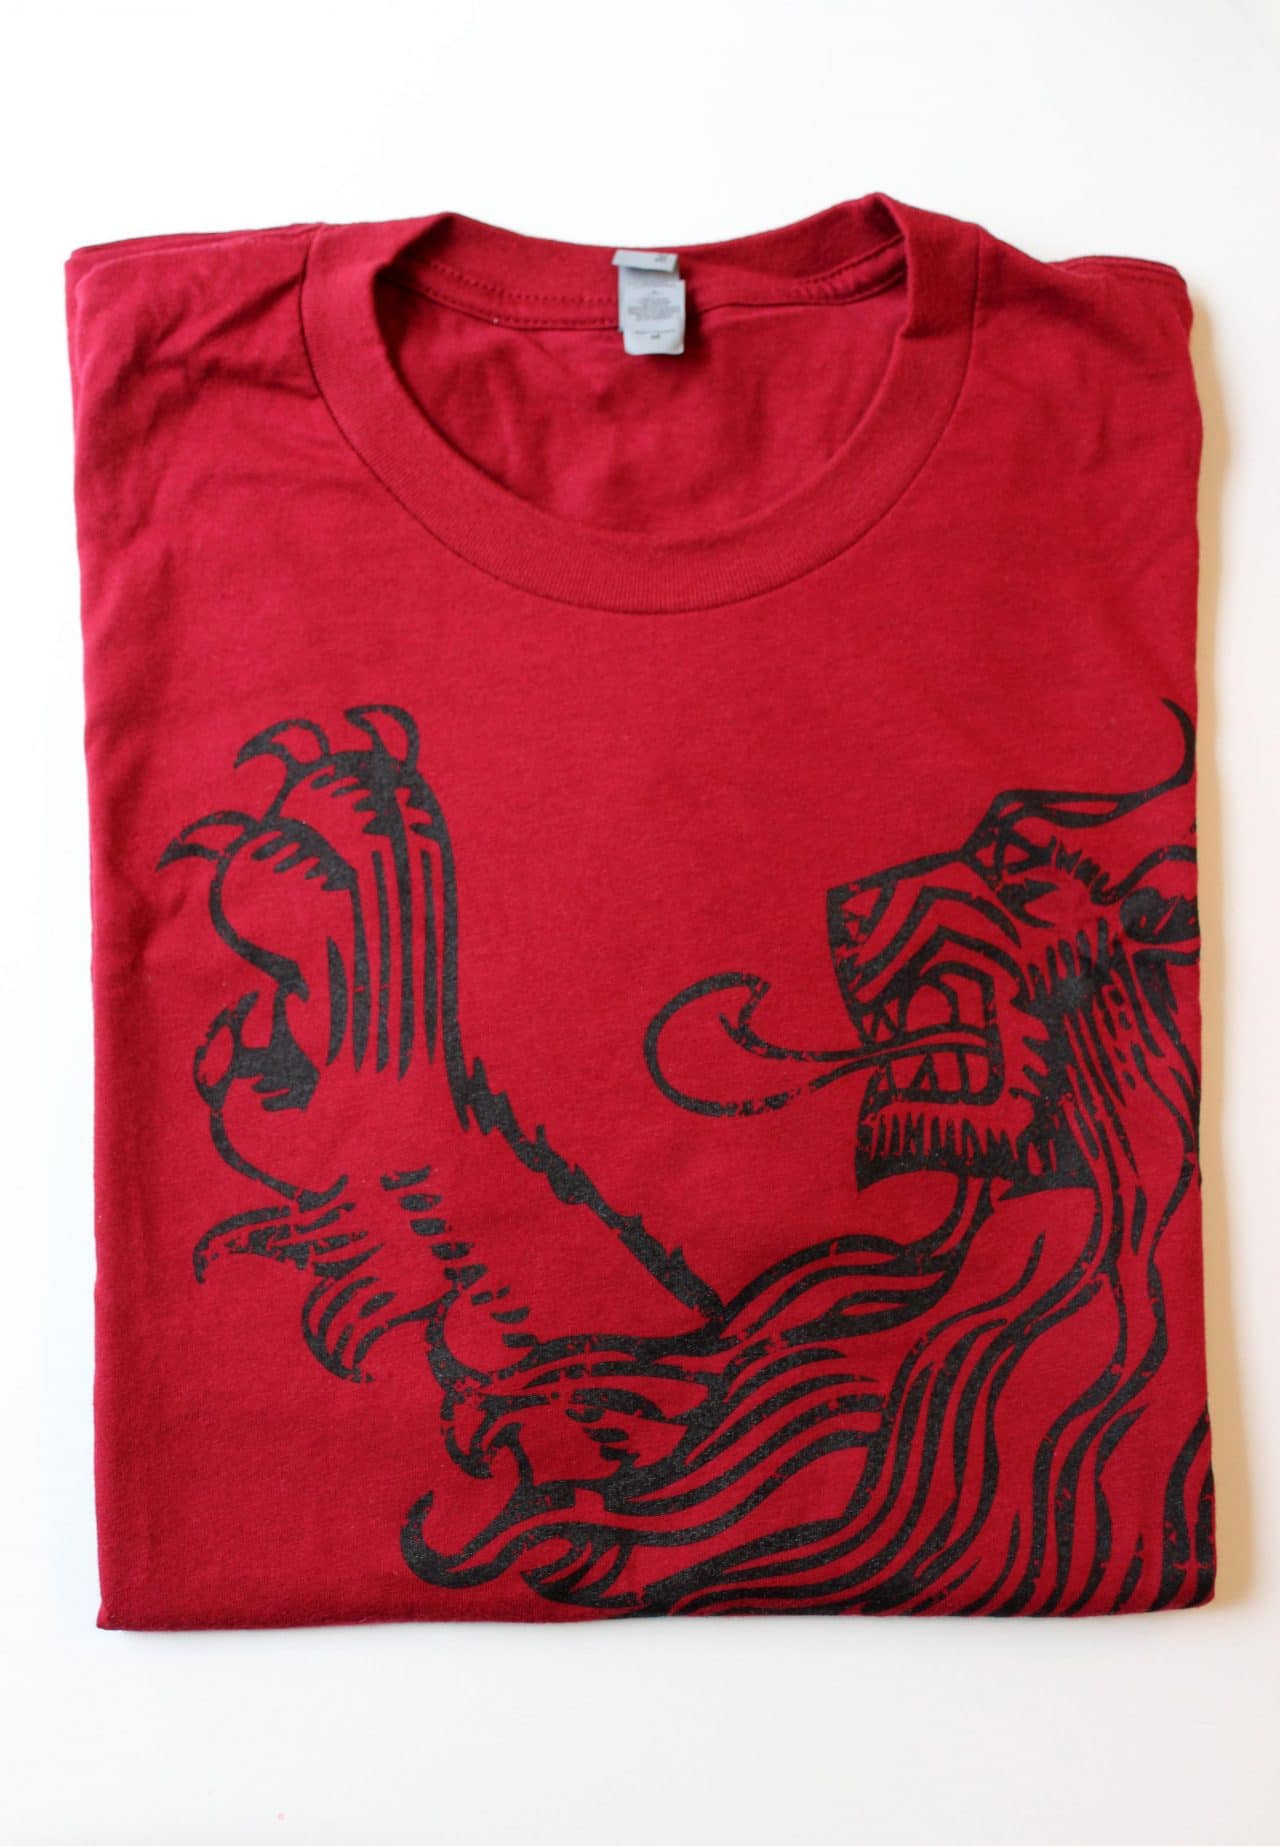 goodies tshirt game of thrones house stark house lannister (1)